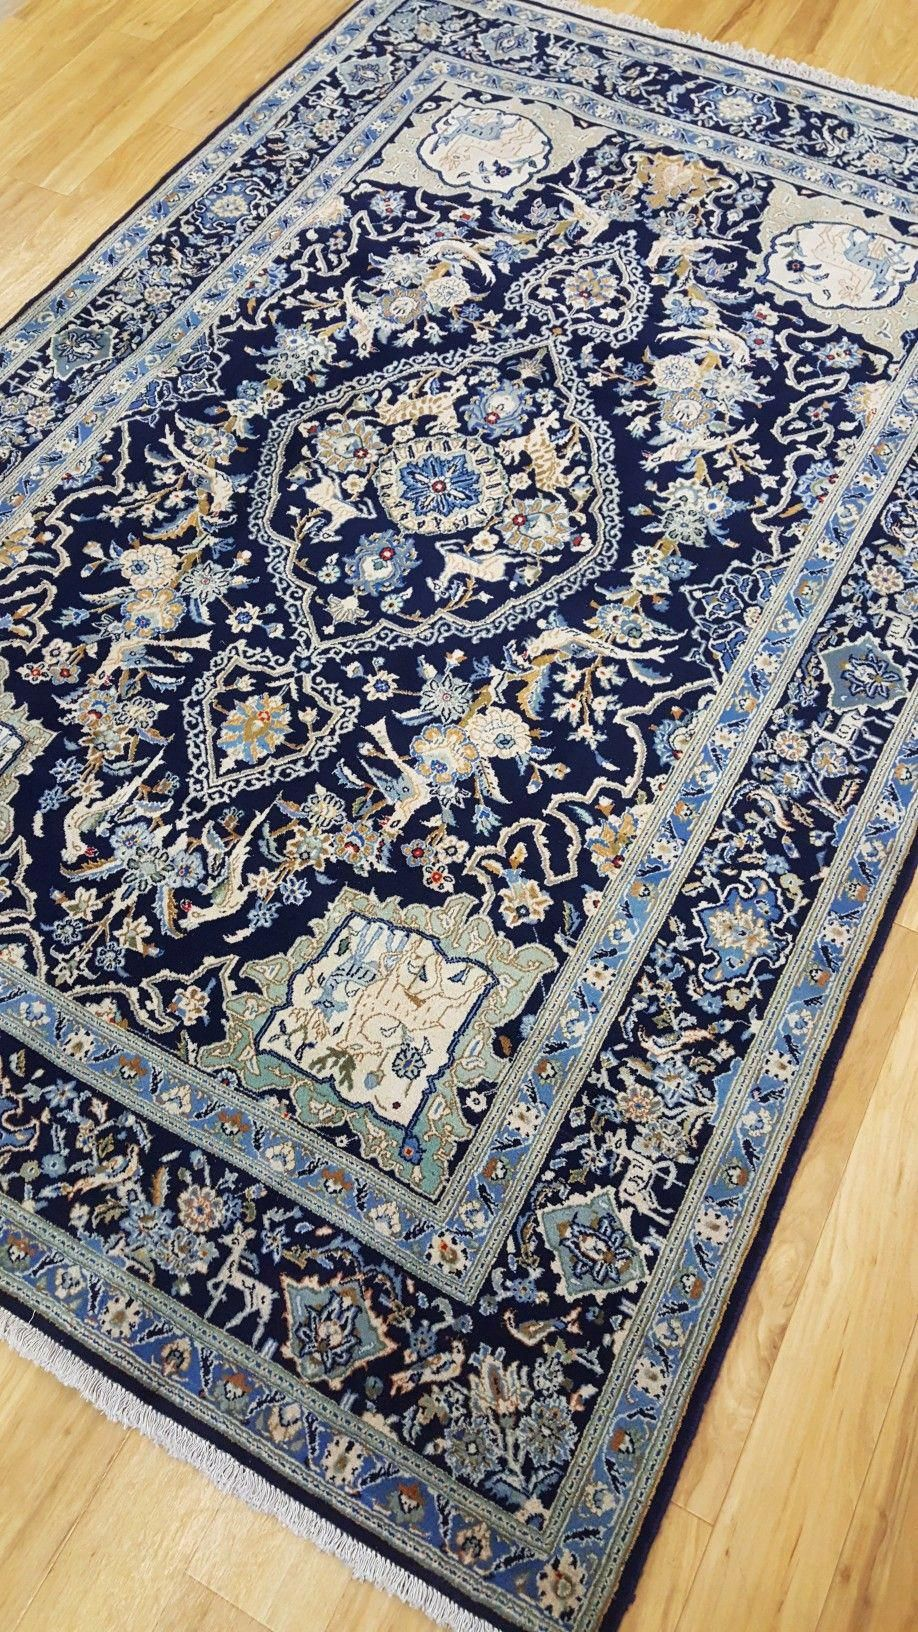 Affordable persian area rugs for sale in charlotte nc antique authentic unique oriental area carpets order online 100 best quality free shipping